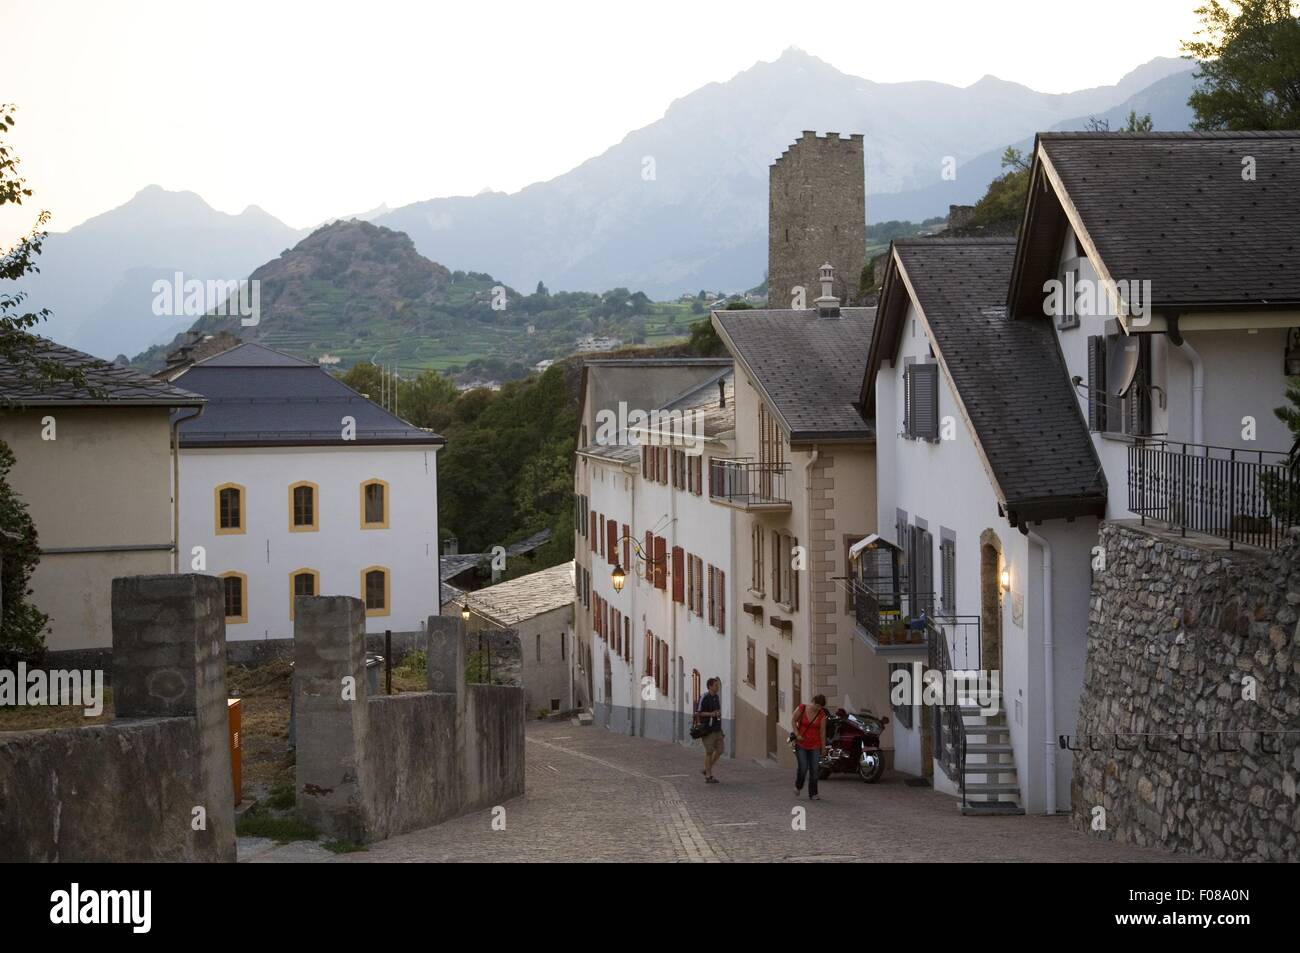 Passers by walking near street castles at Sion, Valias, Switzerland - Stock Image